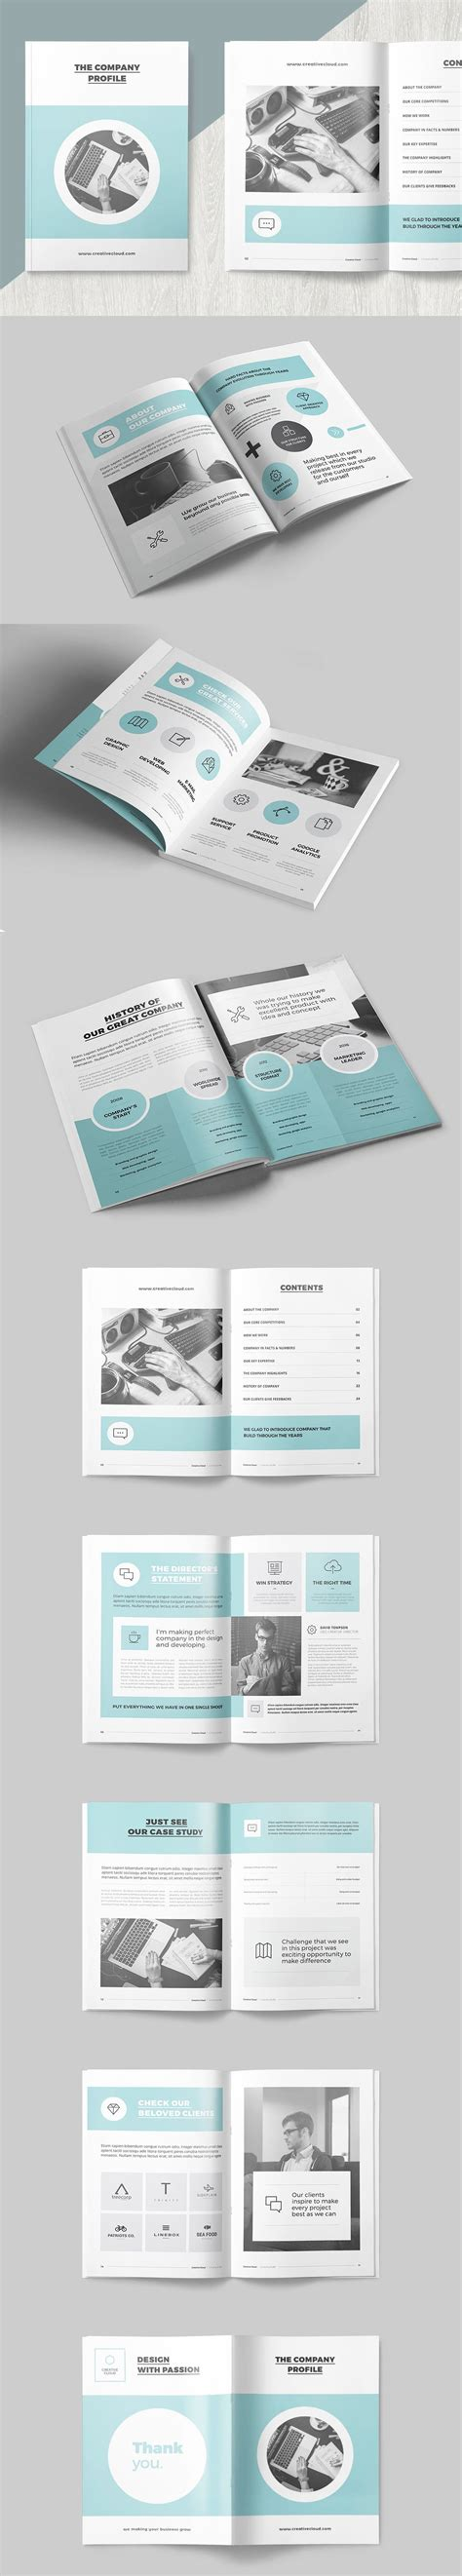 Clean And Professional Company Profile Template Indesign Indd 16 Pages Brochure Proposal Indesign Booklet Template 5 5 X8 5